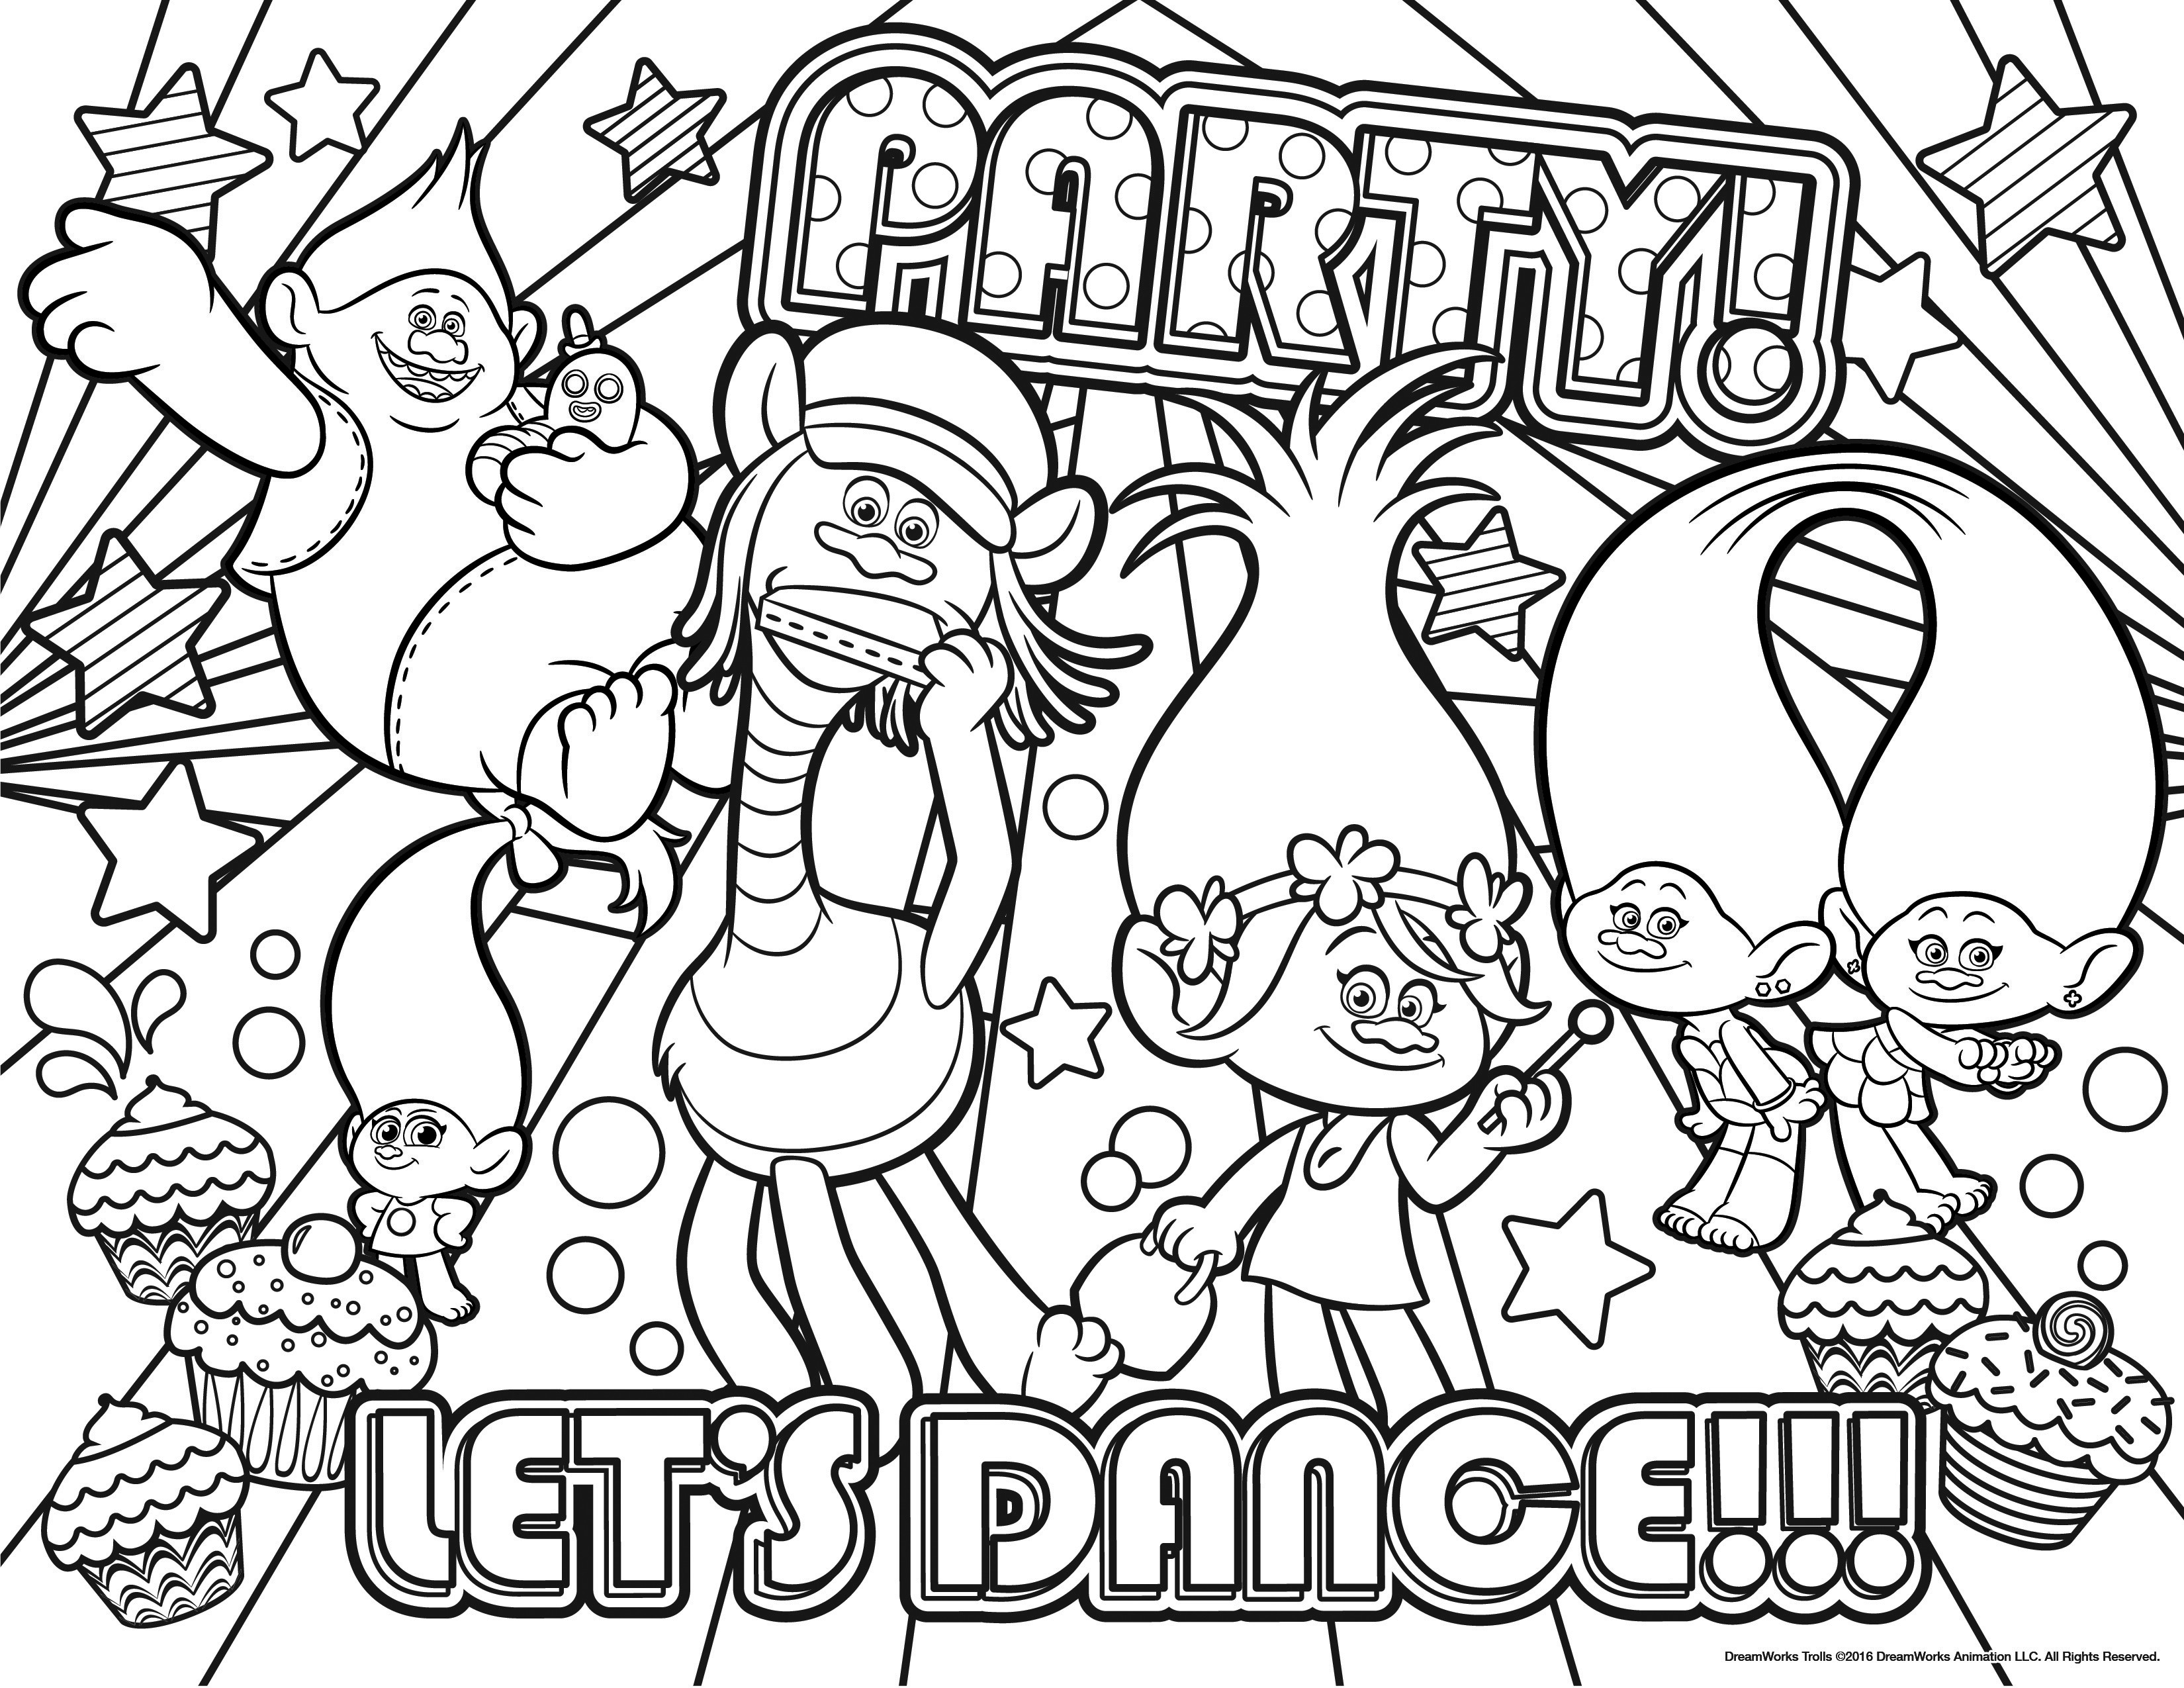 trolls coloring pages troll doll coloring page at getdrawings free download coloring trolls pages